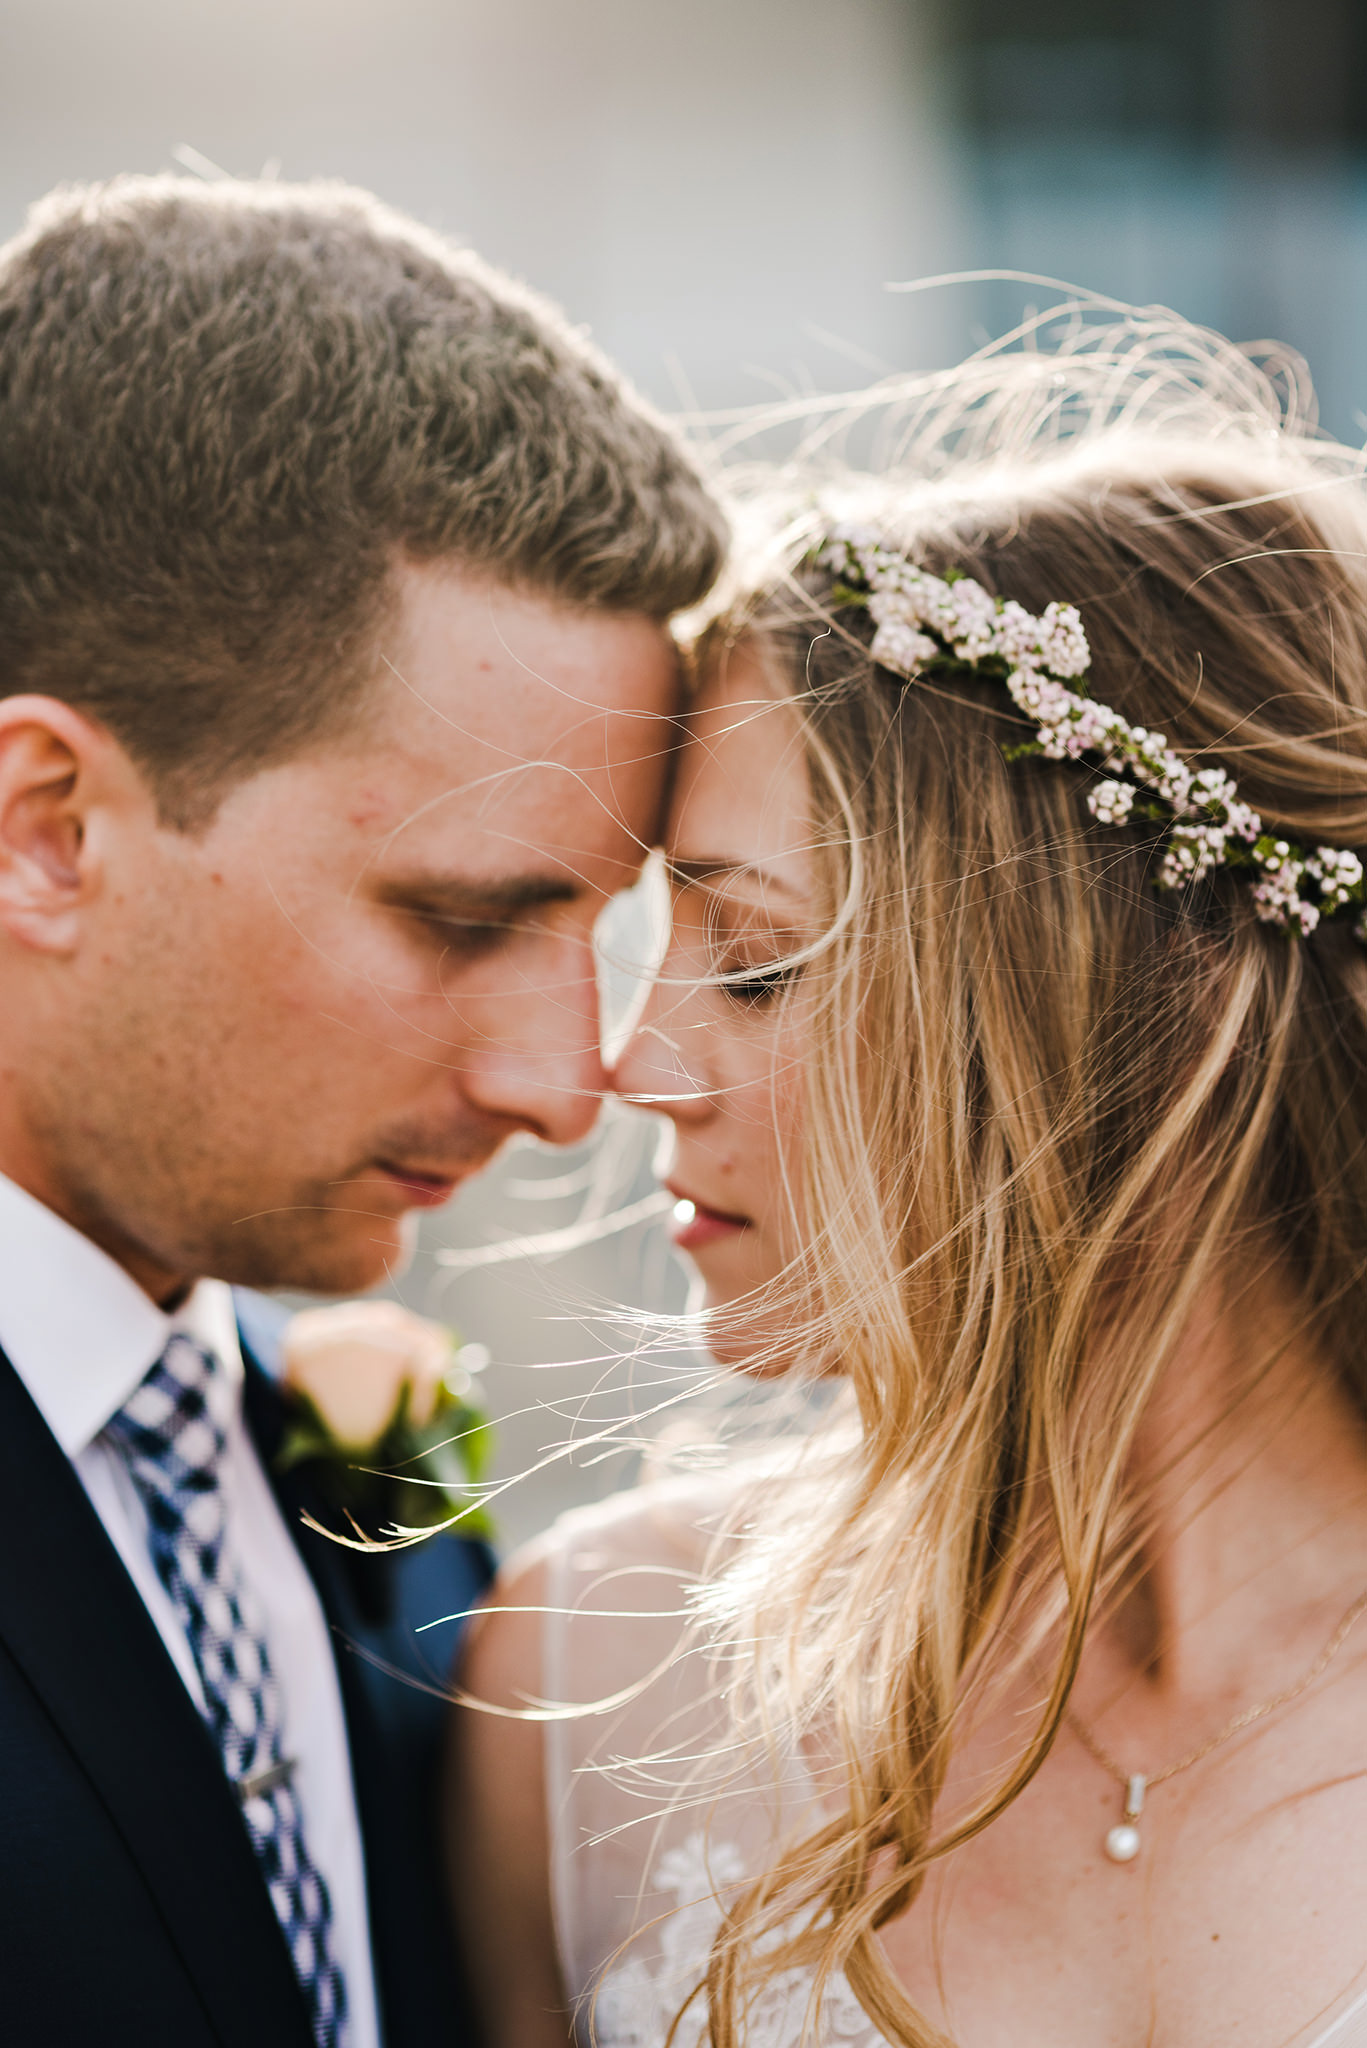 21 beautiful editorial portrait bride and groom close up.JPG